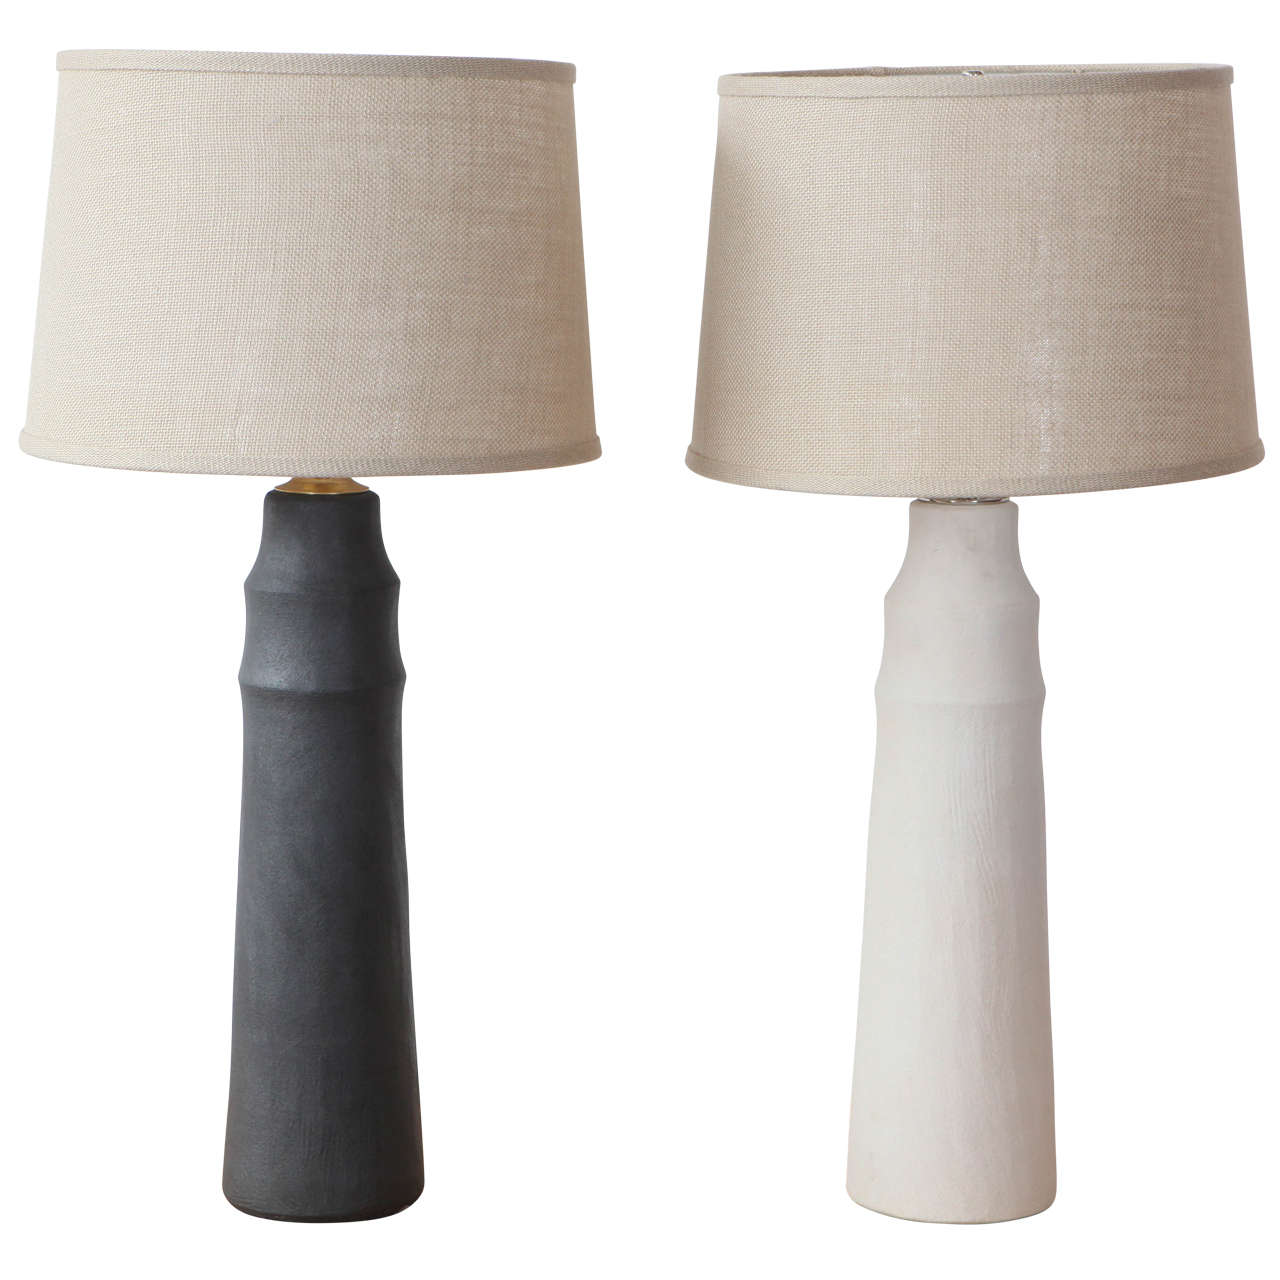 Mirena Kim Handmade Ceramic Table Lamps For Sale